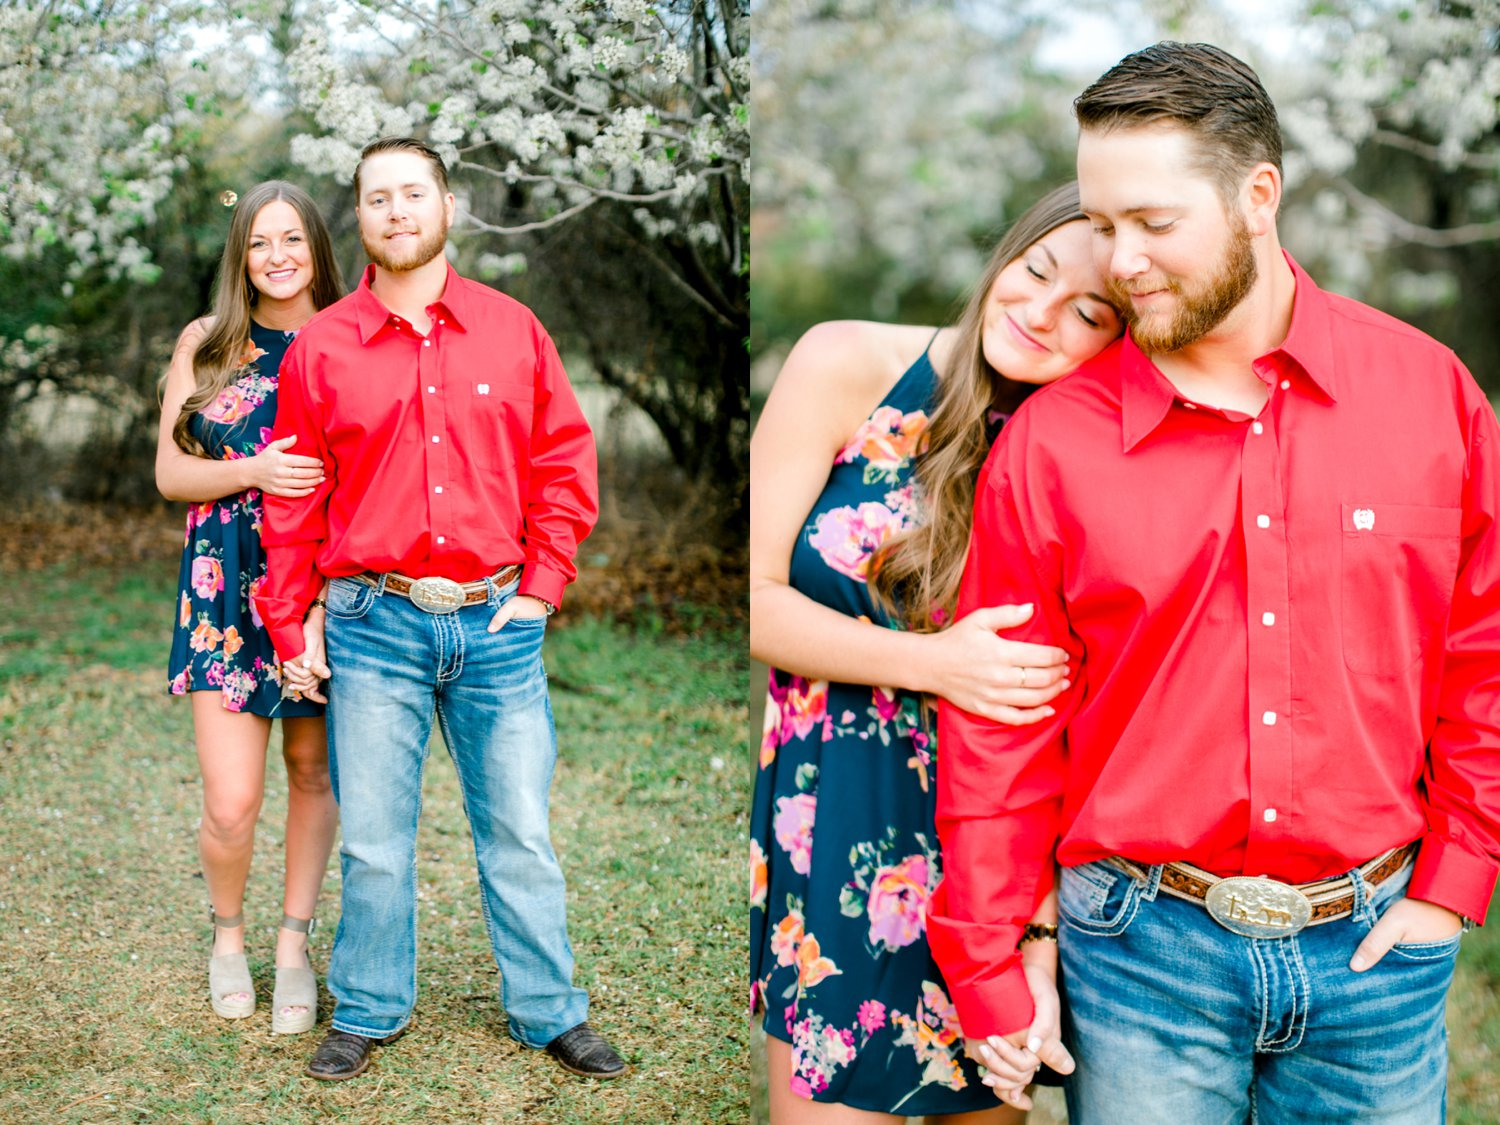 bailey-and-scotland-church-engagement-lubbock-photographer0003.jpg